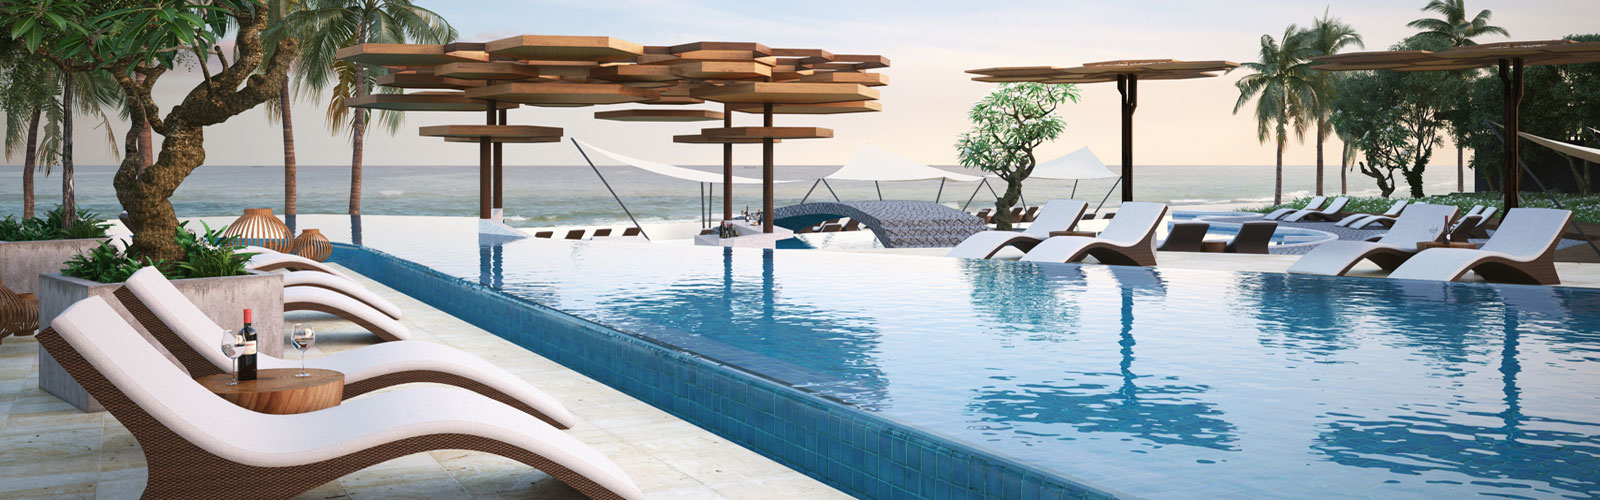 swimming-pool-construction-with-greensense-concrete